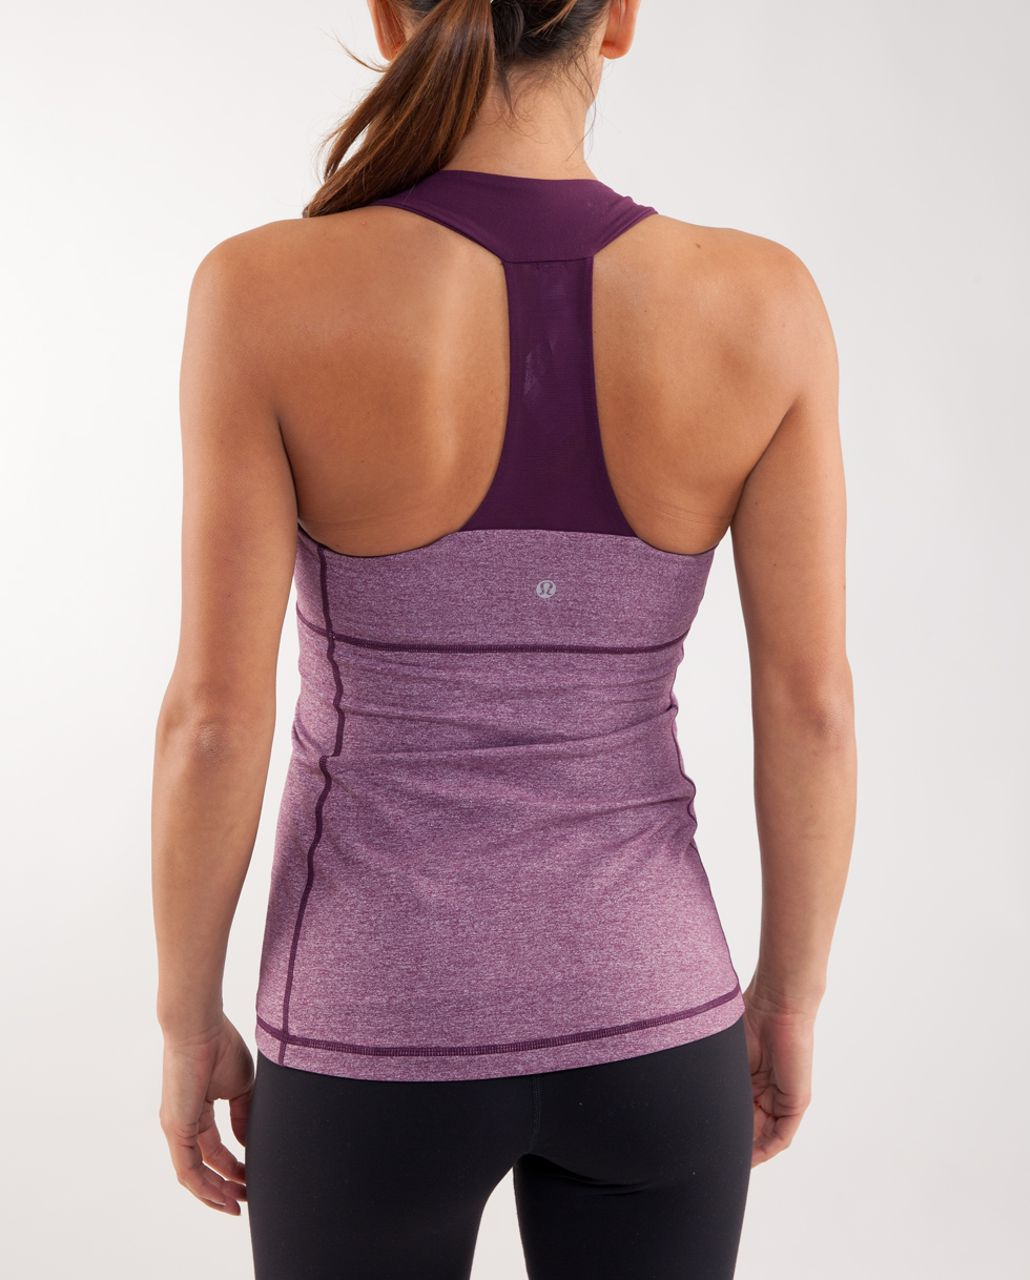 Lululemon Scoop Neck Tank - Heathered Plum /  Plum